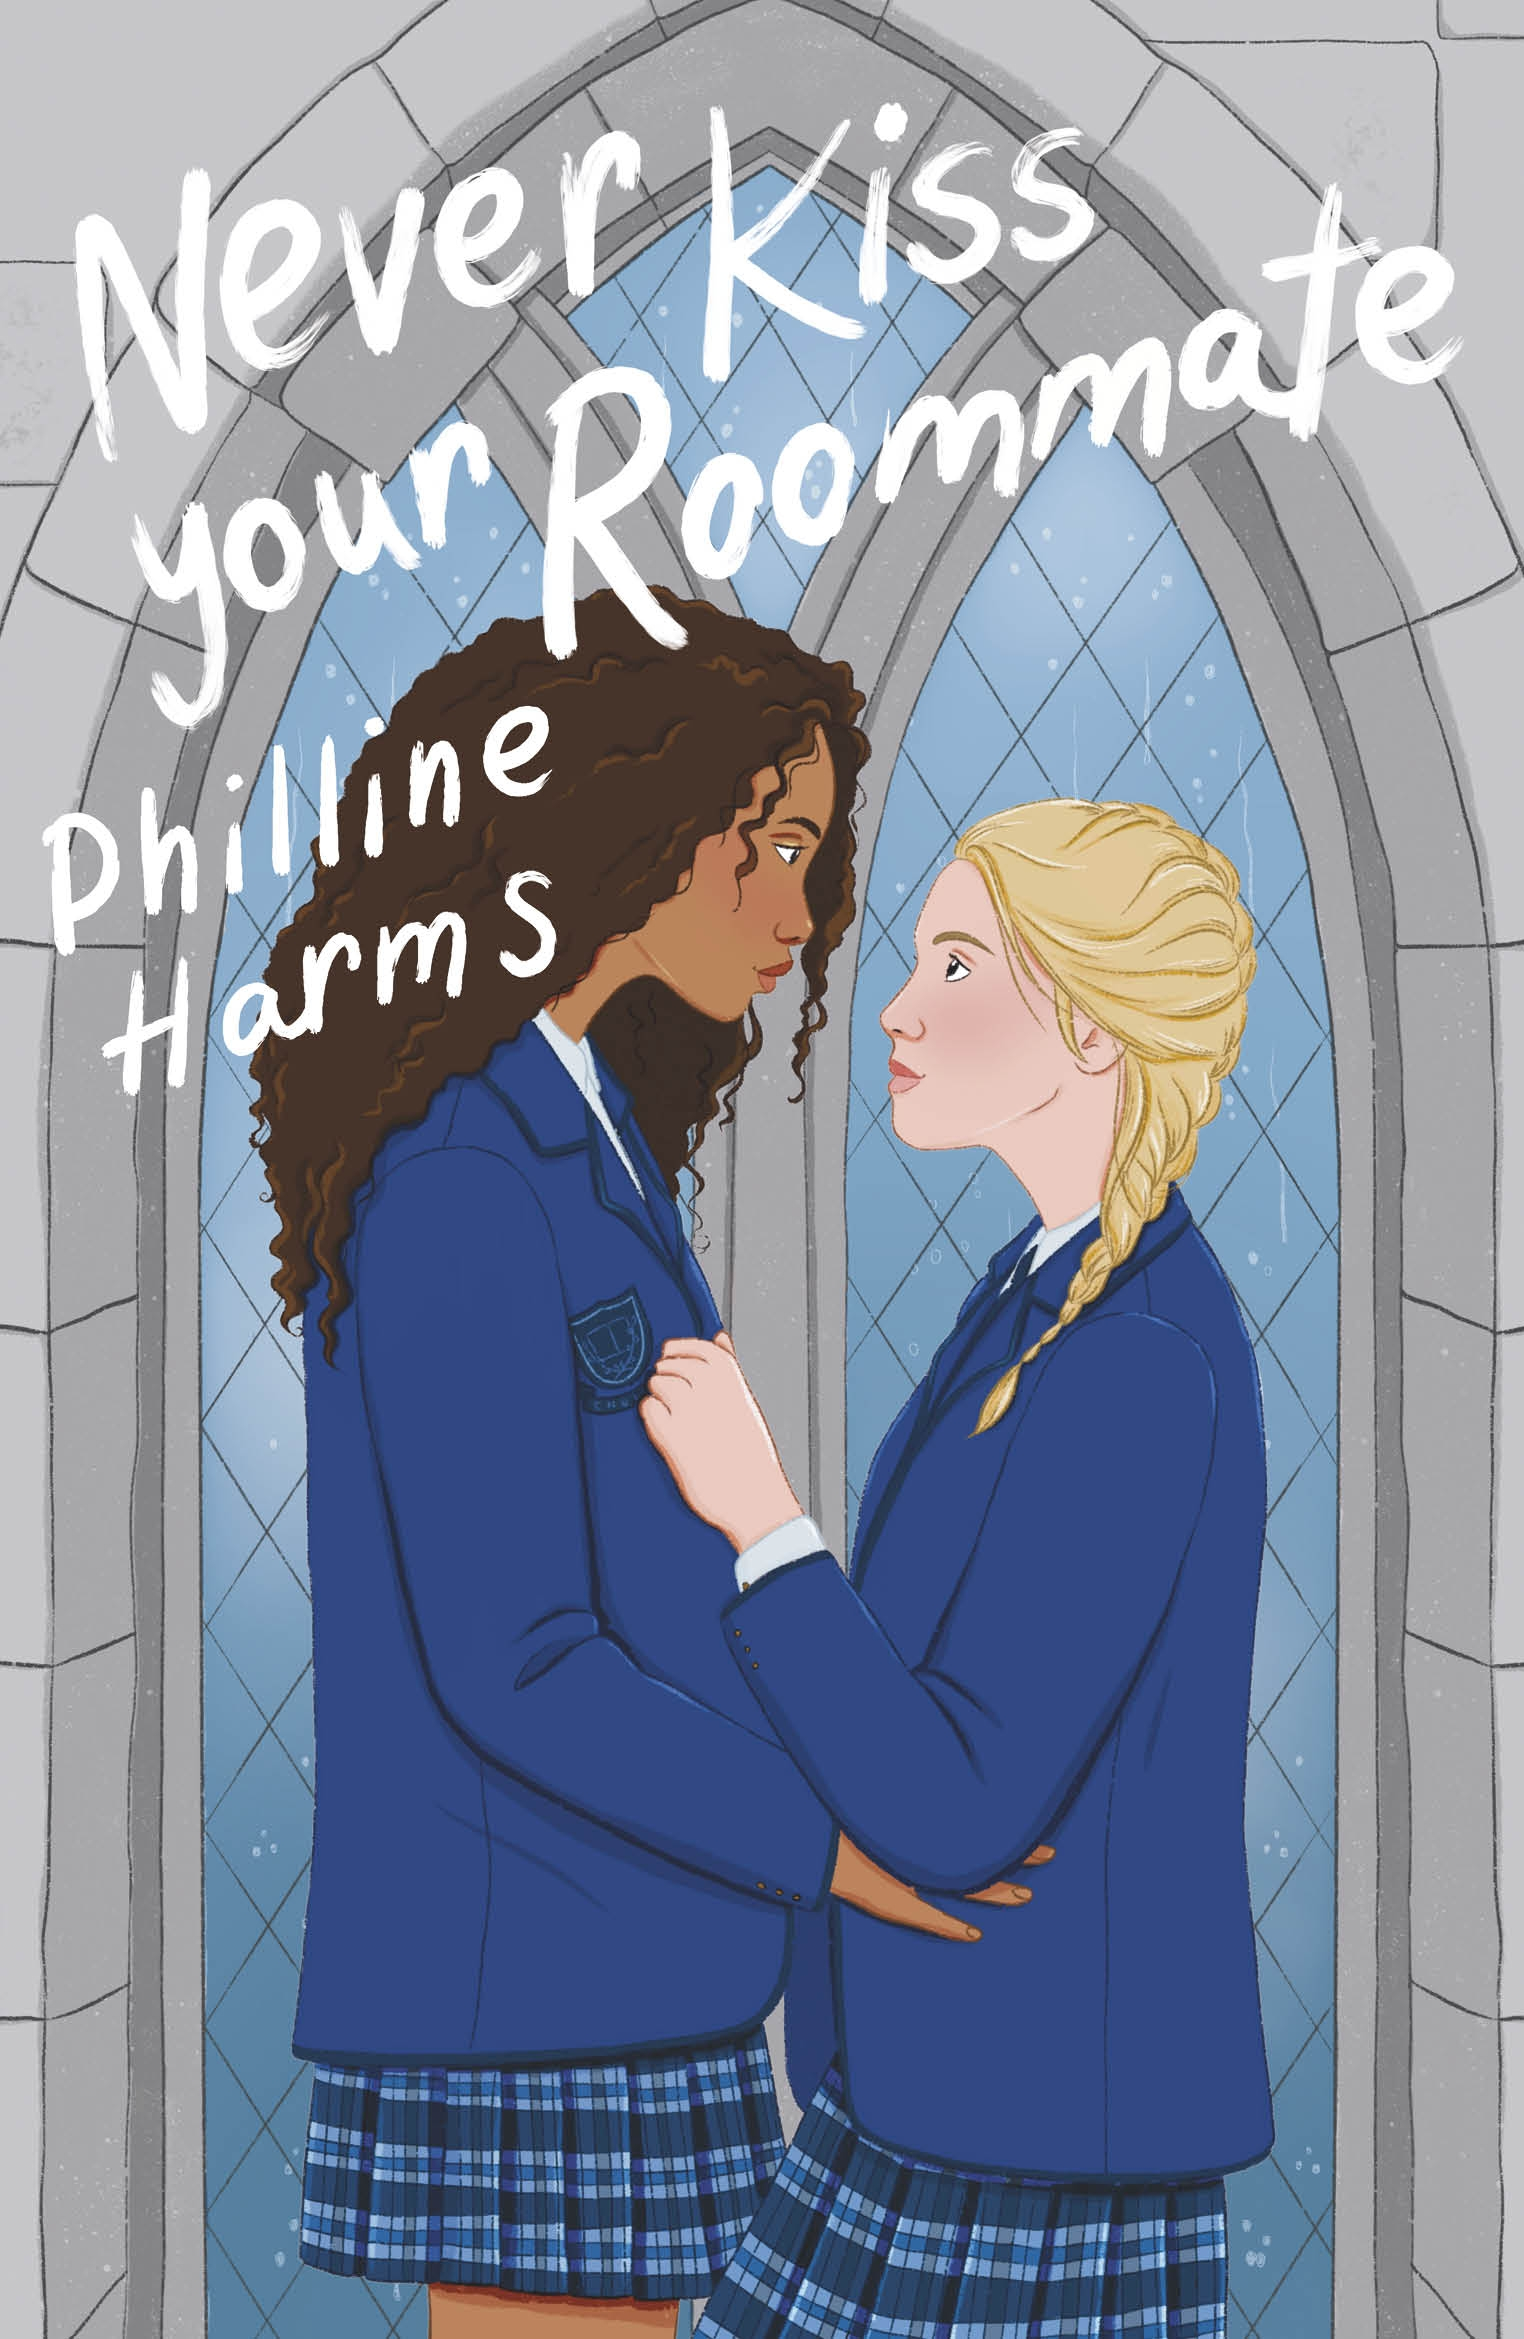 The cover of Never Kiss Your Roommate by Philline Harms